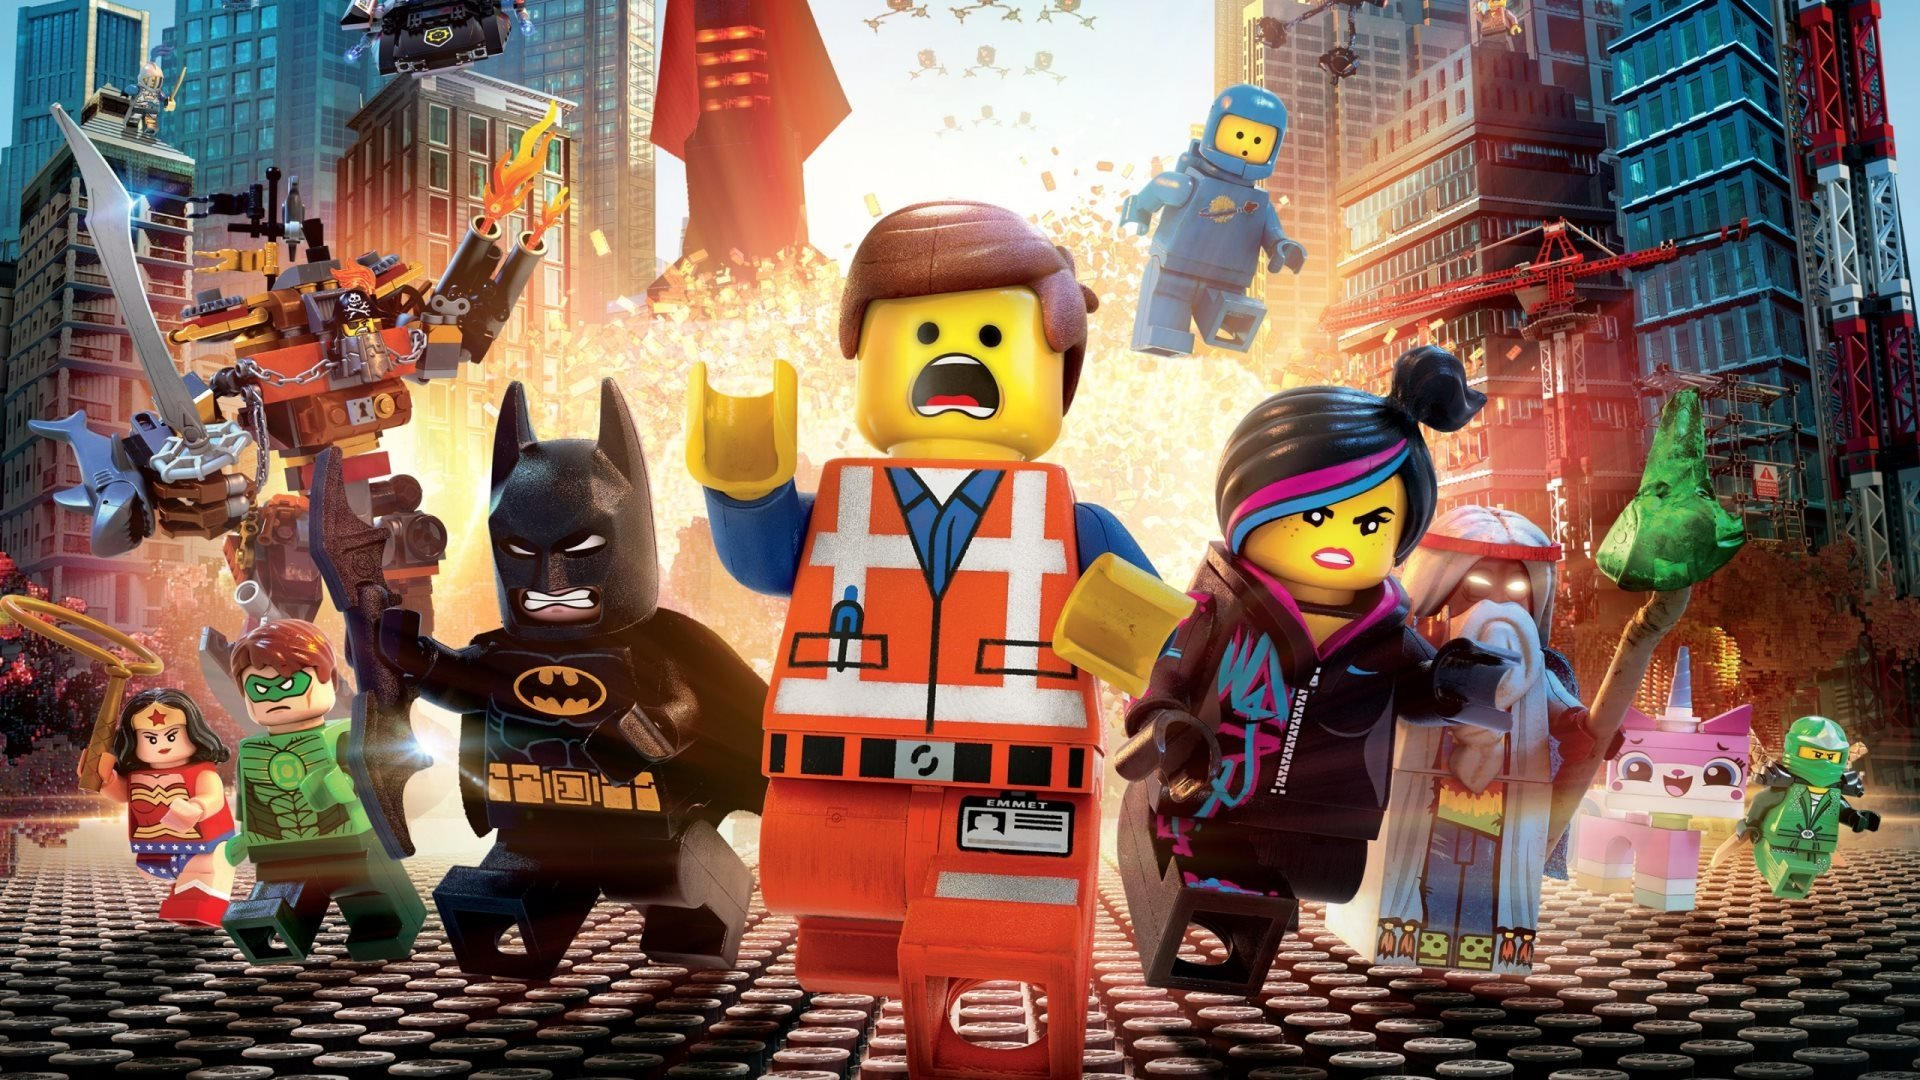 115 The Lego Movie Hd Wallpapers Background Images Wallpaper Abyss